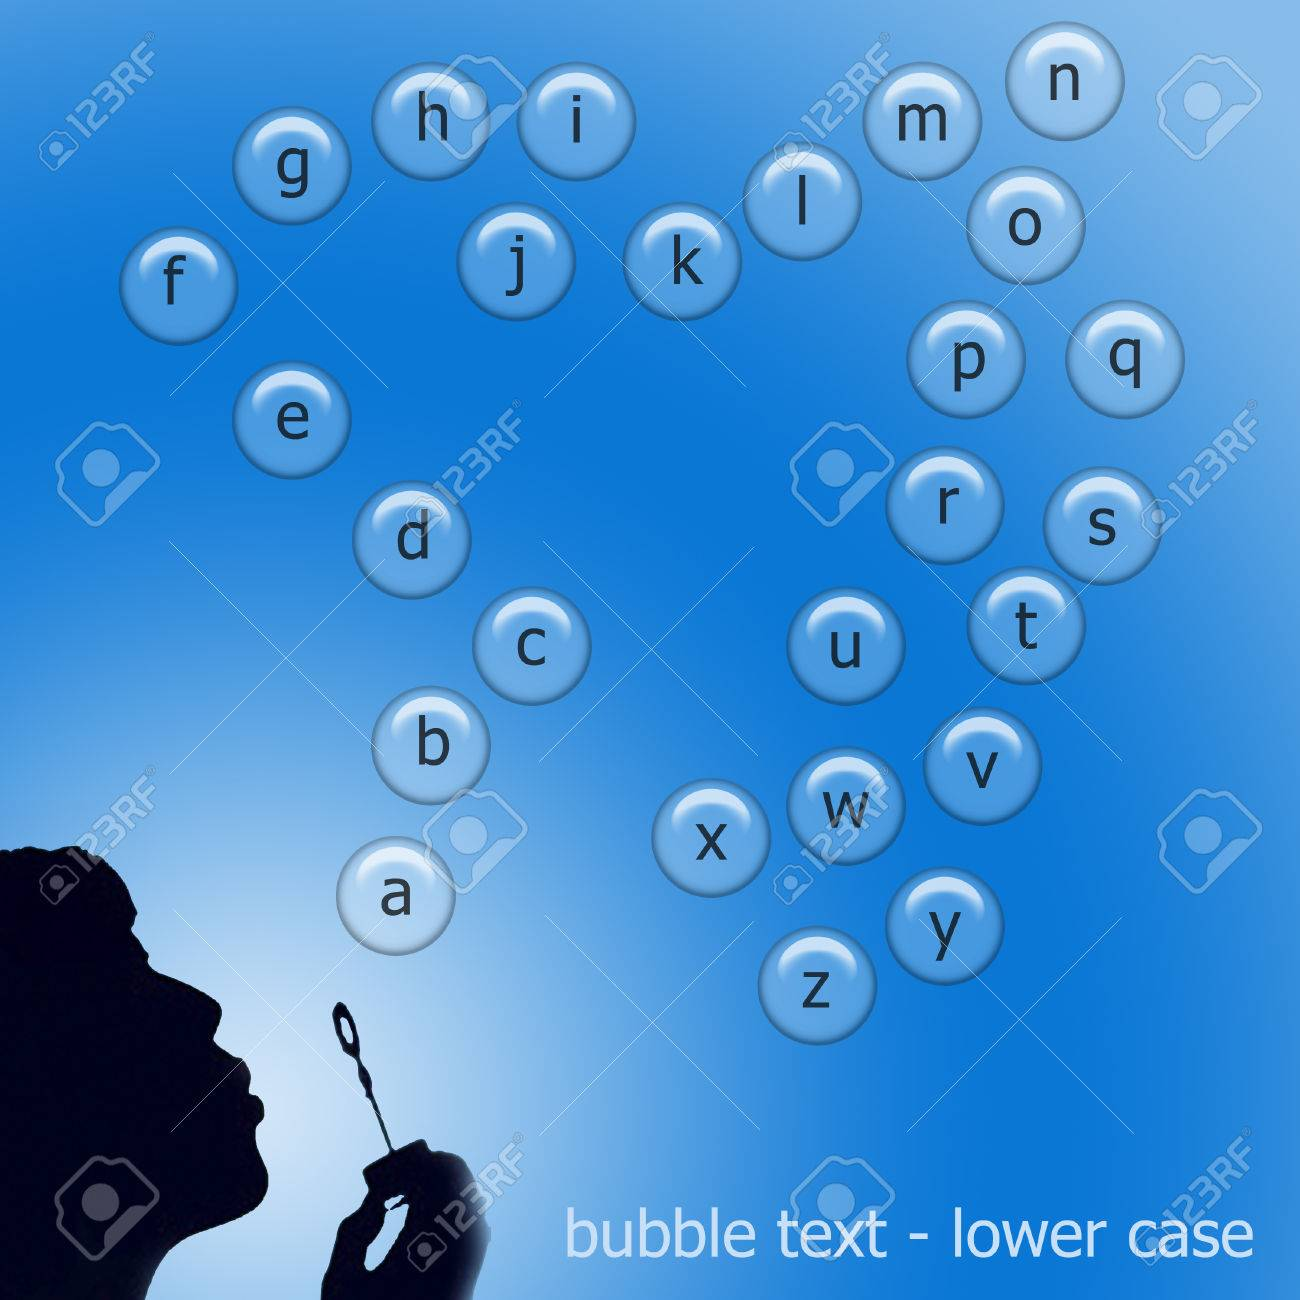 bubble text in lower case Stock Vector - 7119844